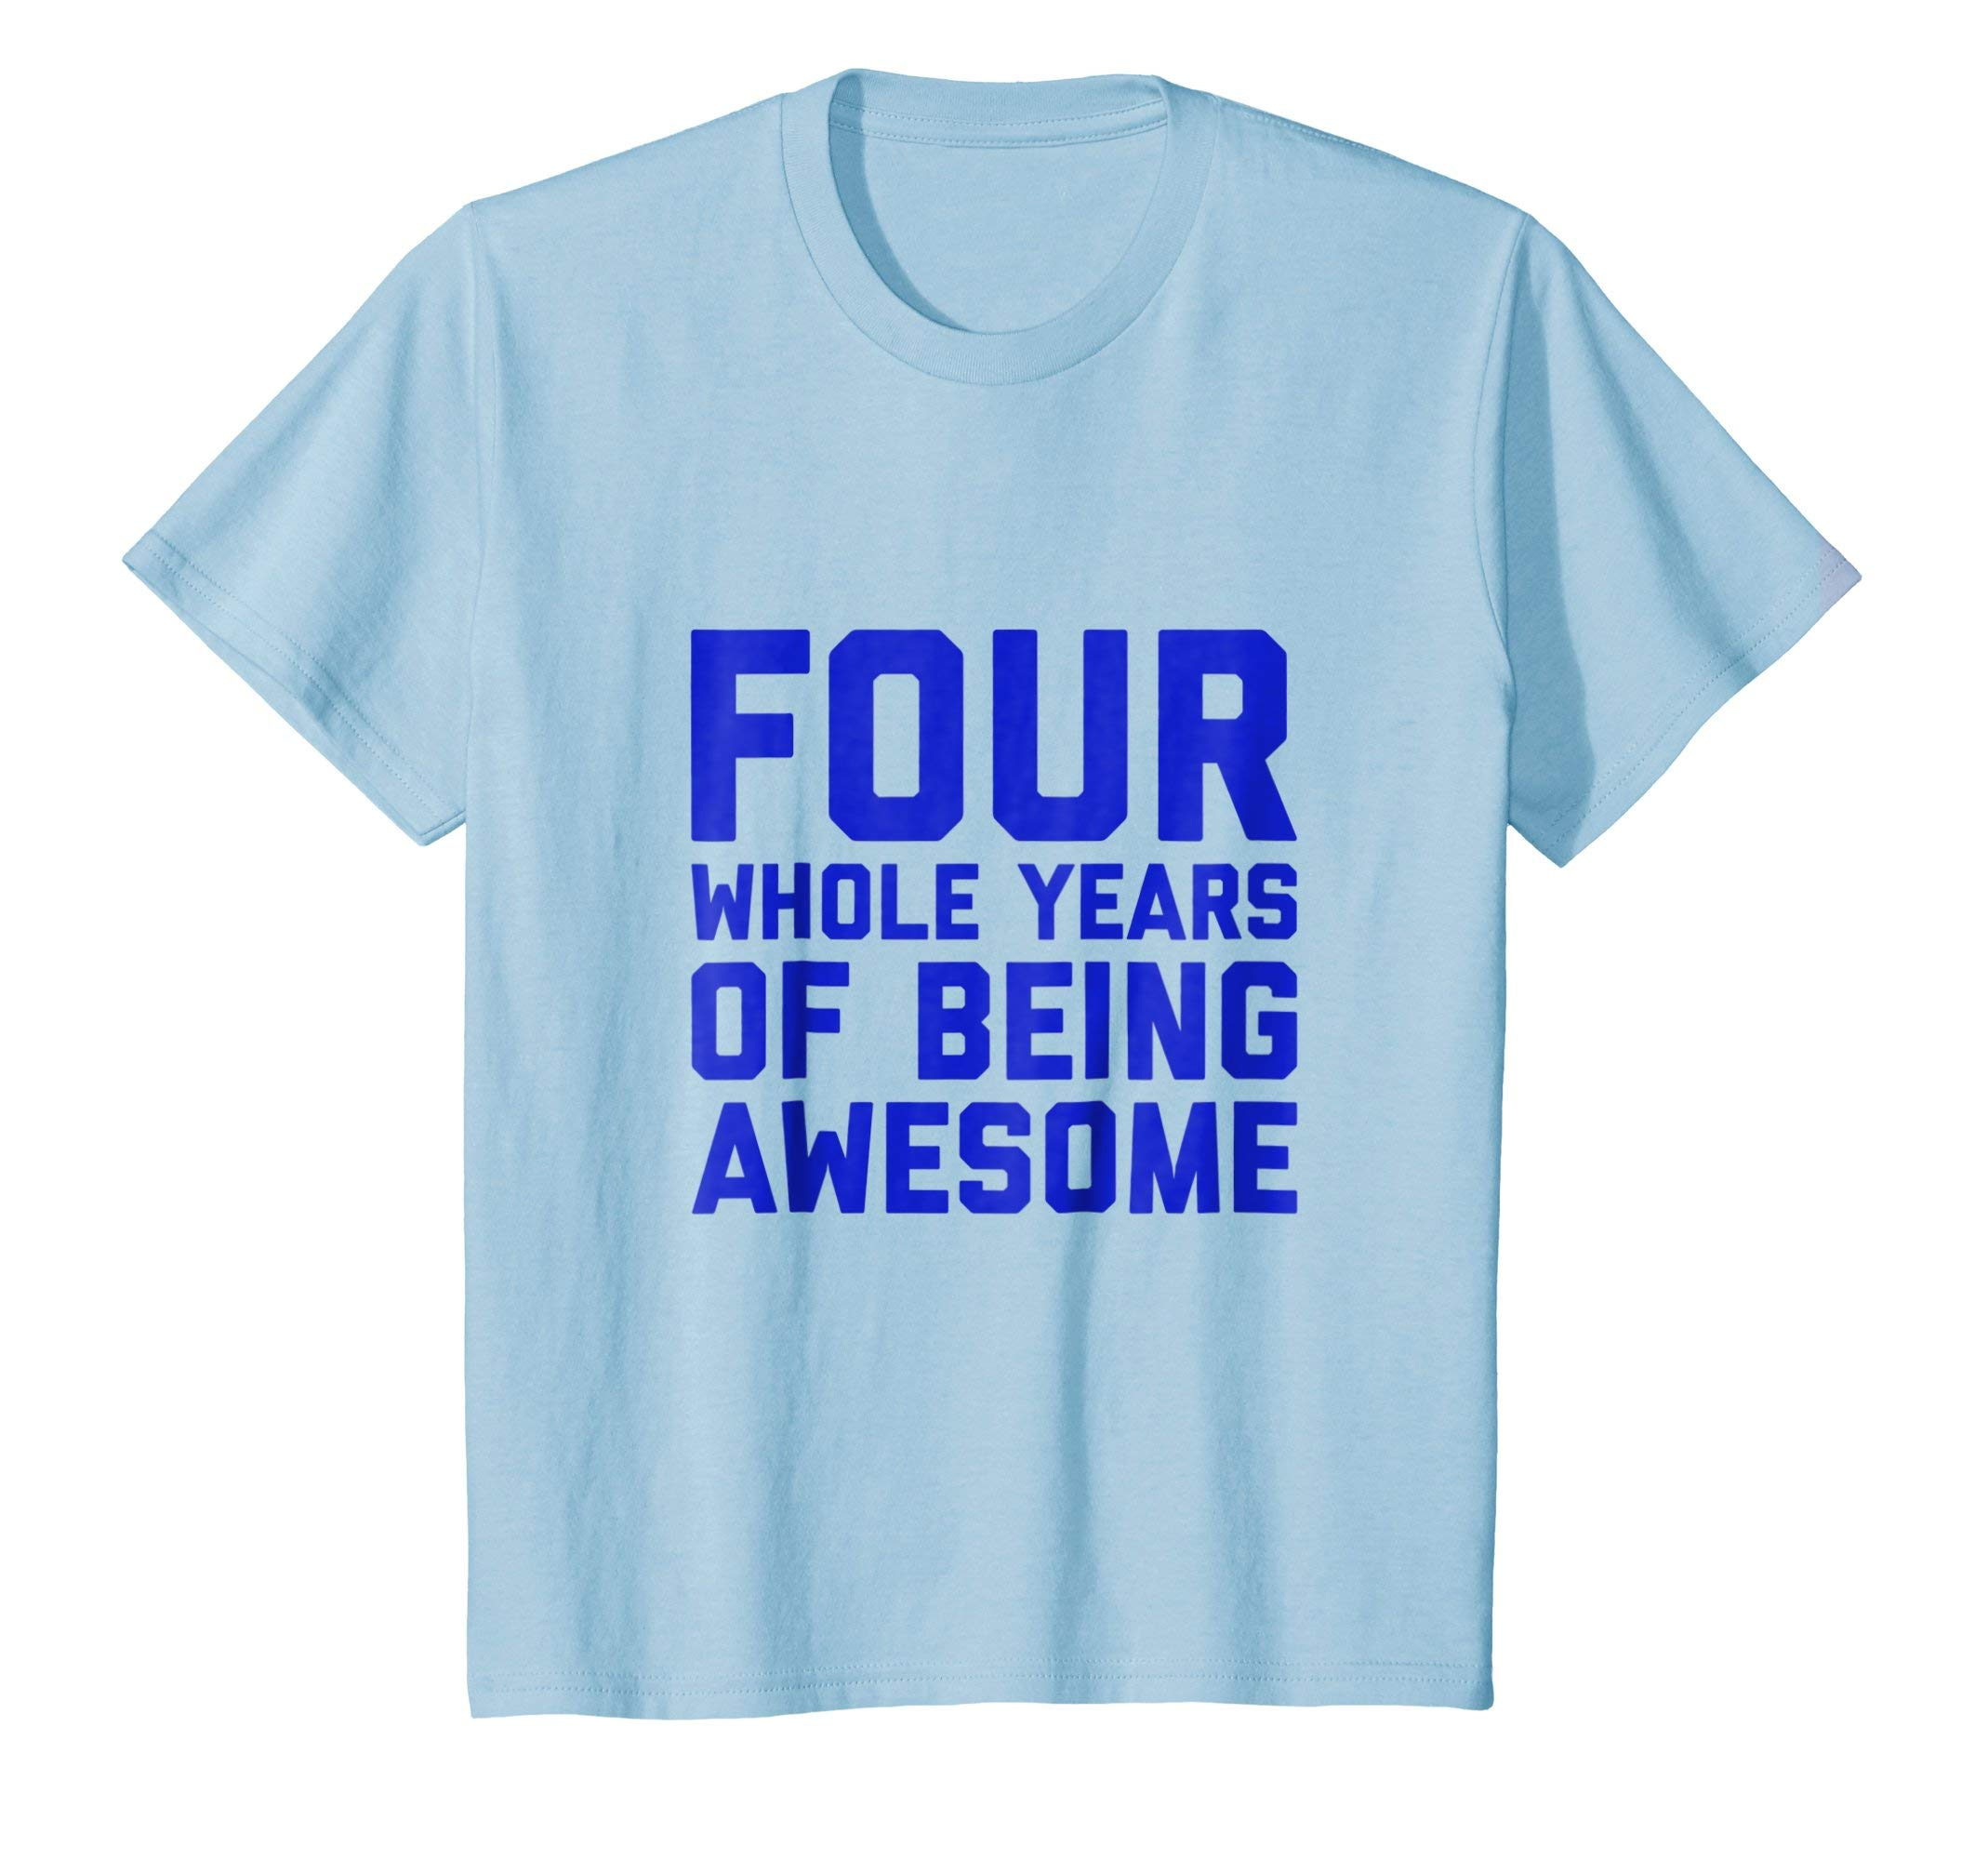 Kids 4th Birthday Shirt Gift Boys Age 4 Four Year Old Boy Tshirt 8 Baby Blue